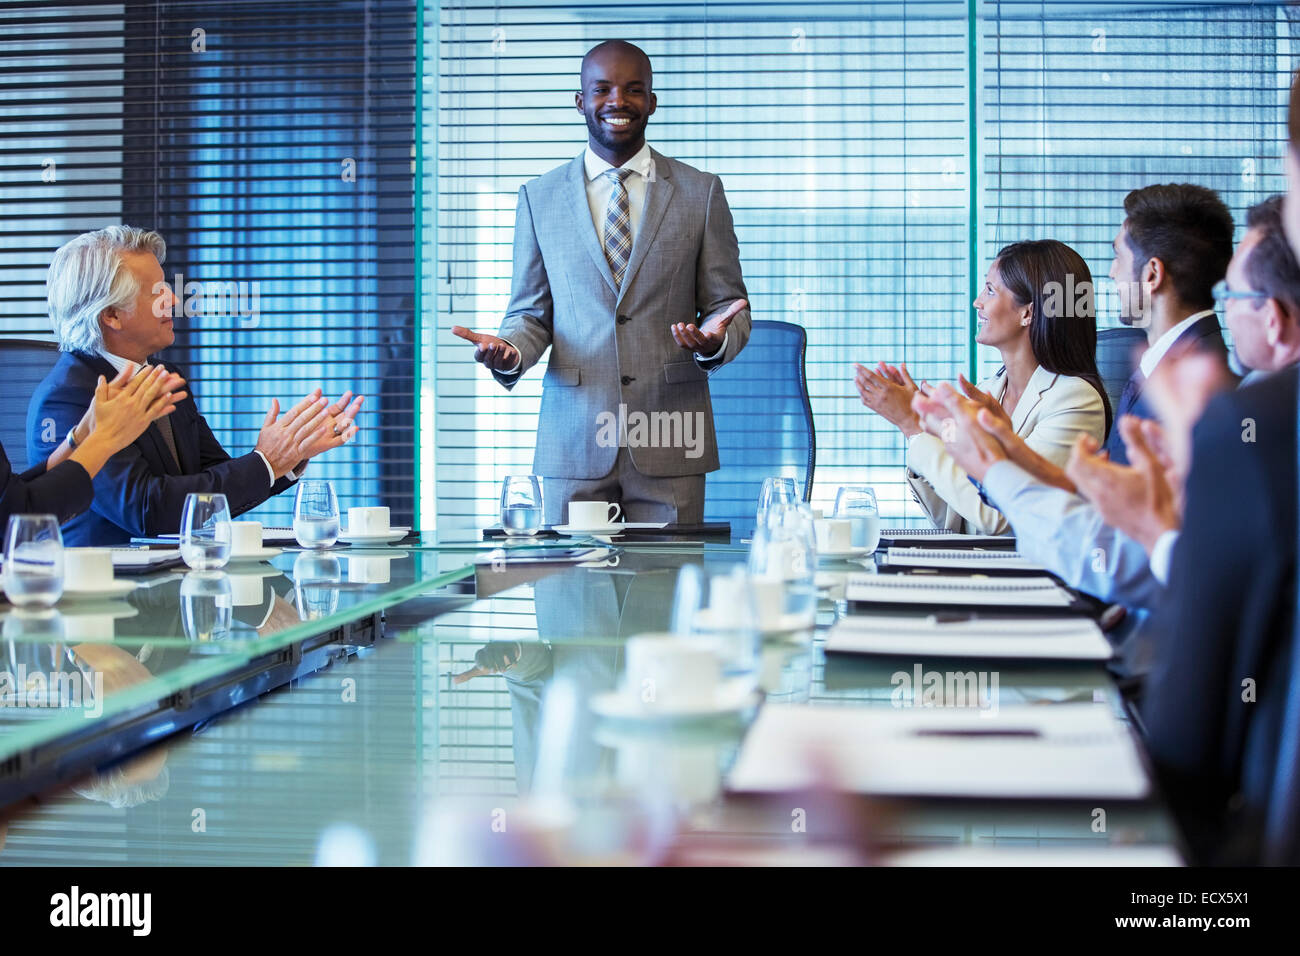 Businessman giving speech in conference room, colleagues clapping hands - Stock Image